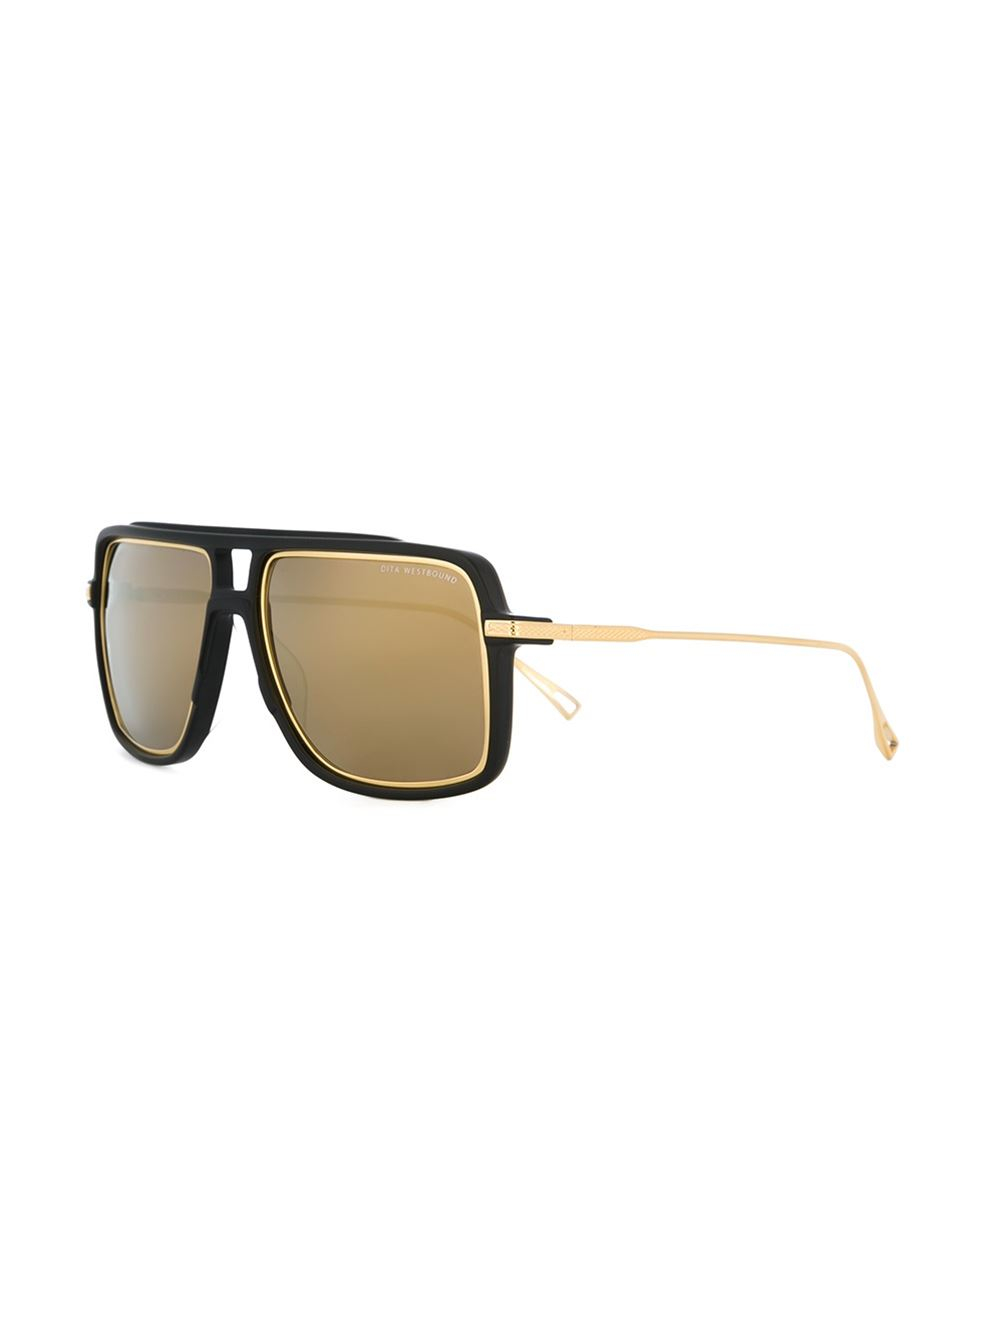 Dita eyewear 'westbound' Sunglasses in Gold (BLACK) | Lyst Dita Eyewear